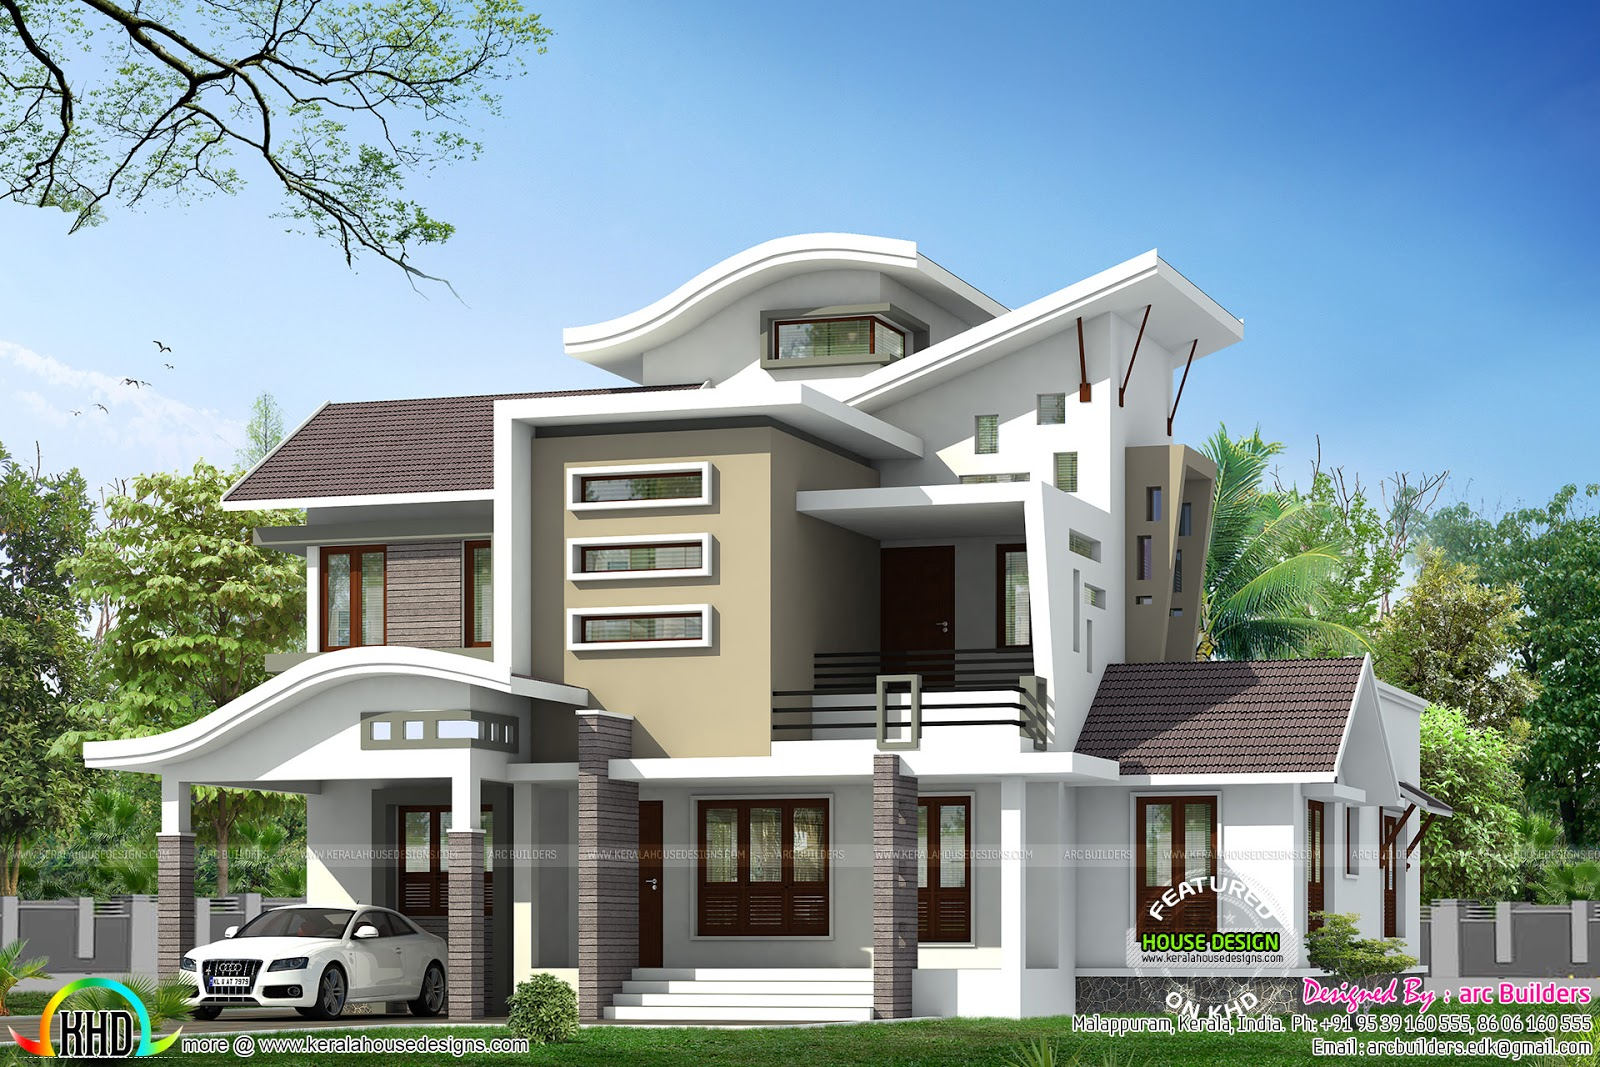 Exceptional Contemporary Home Designs At Malappuram Part - 9: 2450 Sq.feet Home Design From Kasaragod, Kerala - Kerala Home Design ... |  Bungalow House | Pinterest | Kerala, House And Exterior Colors